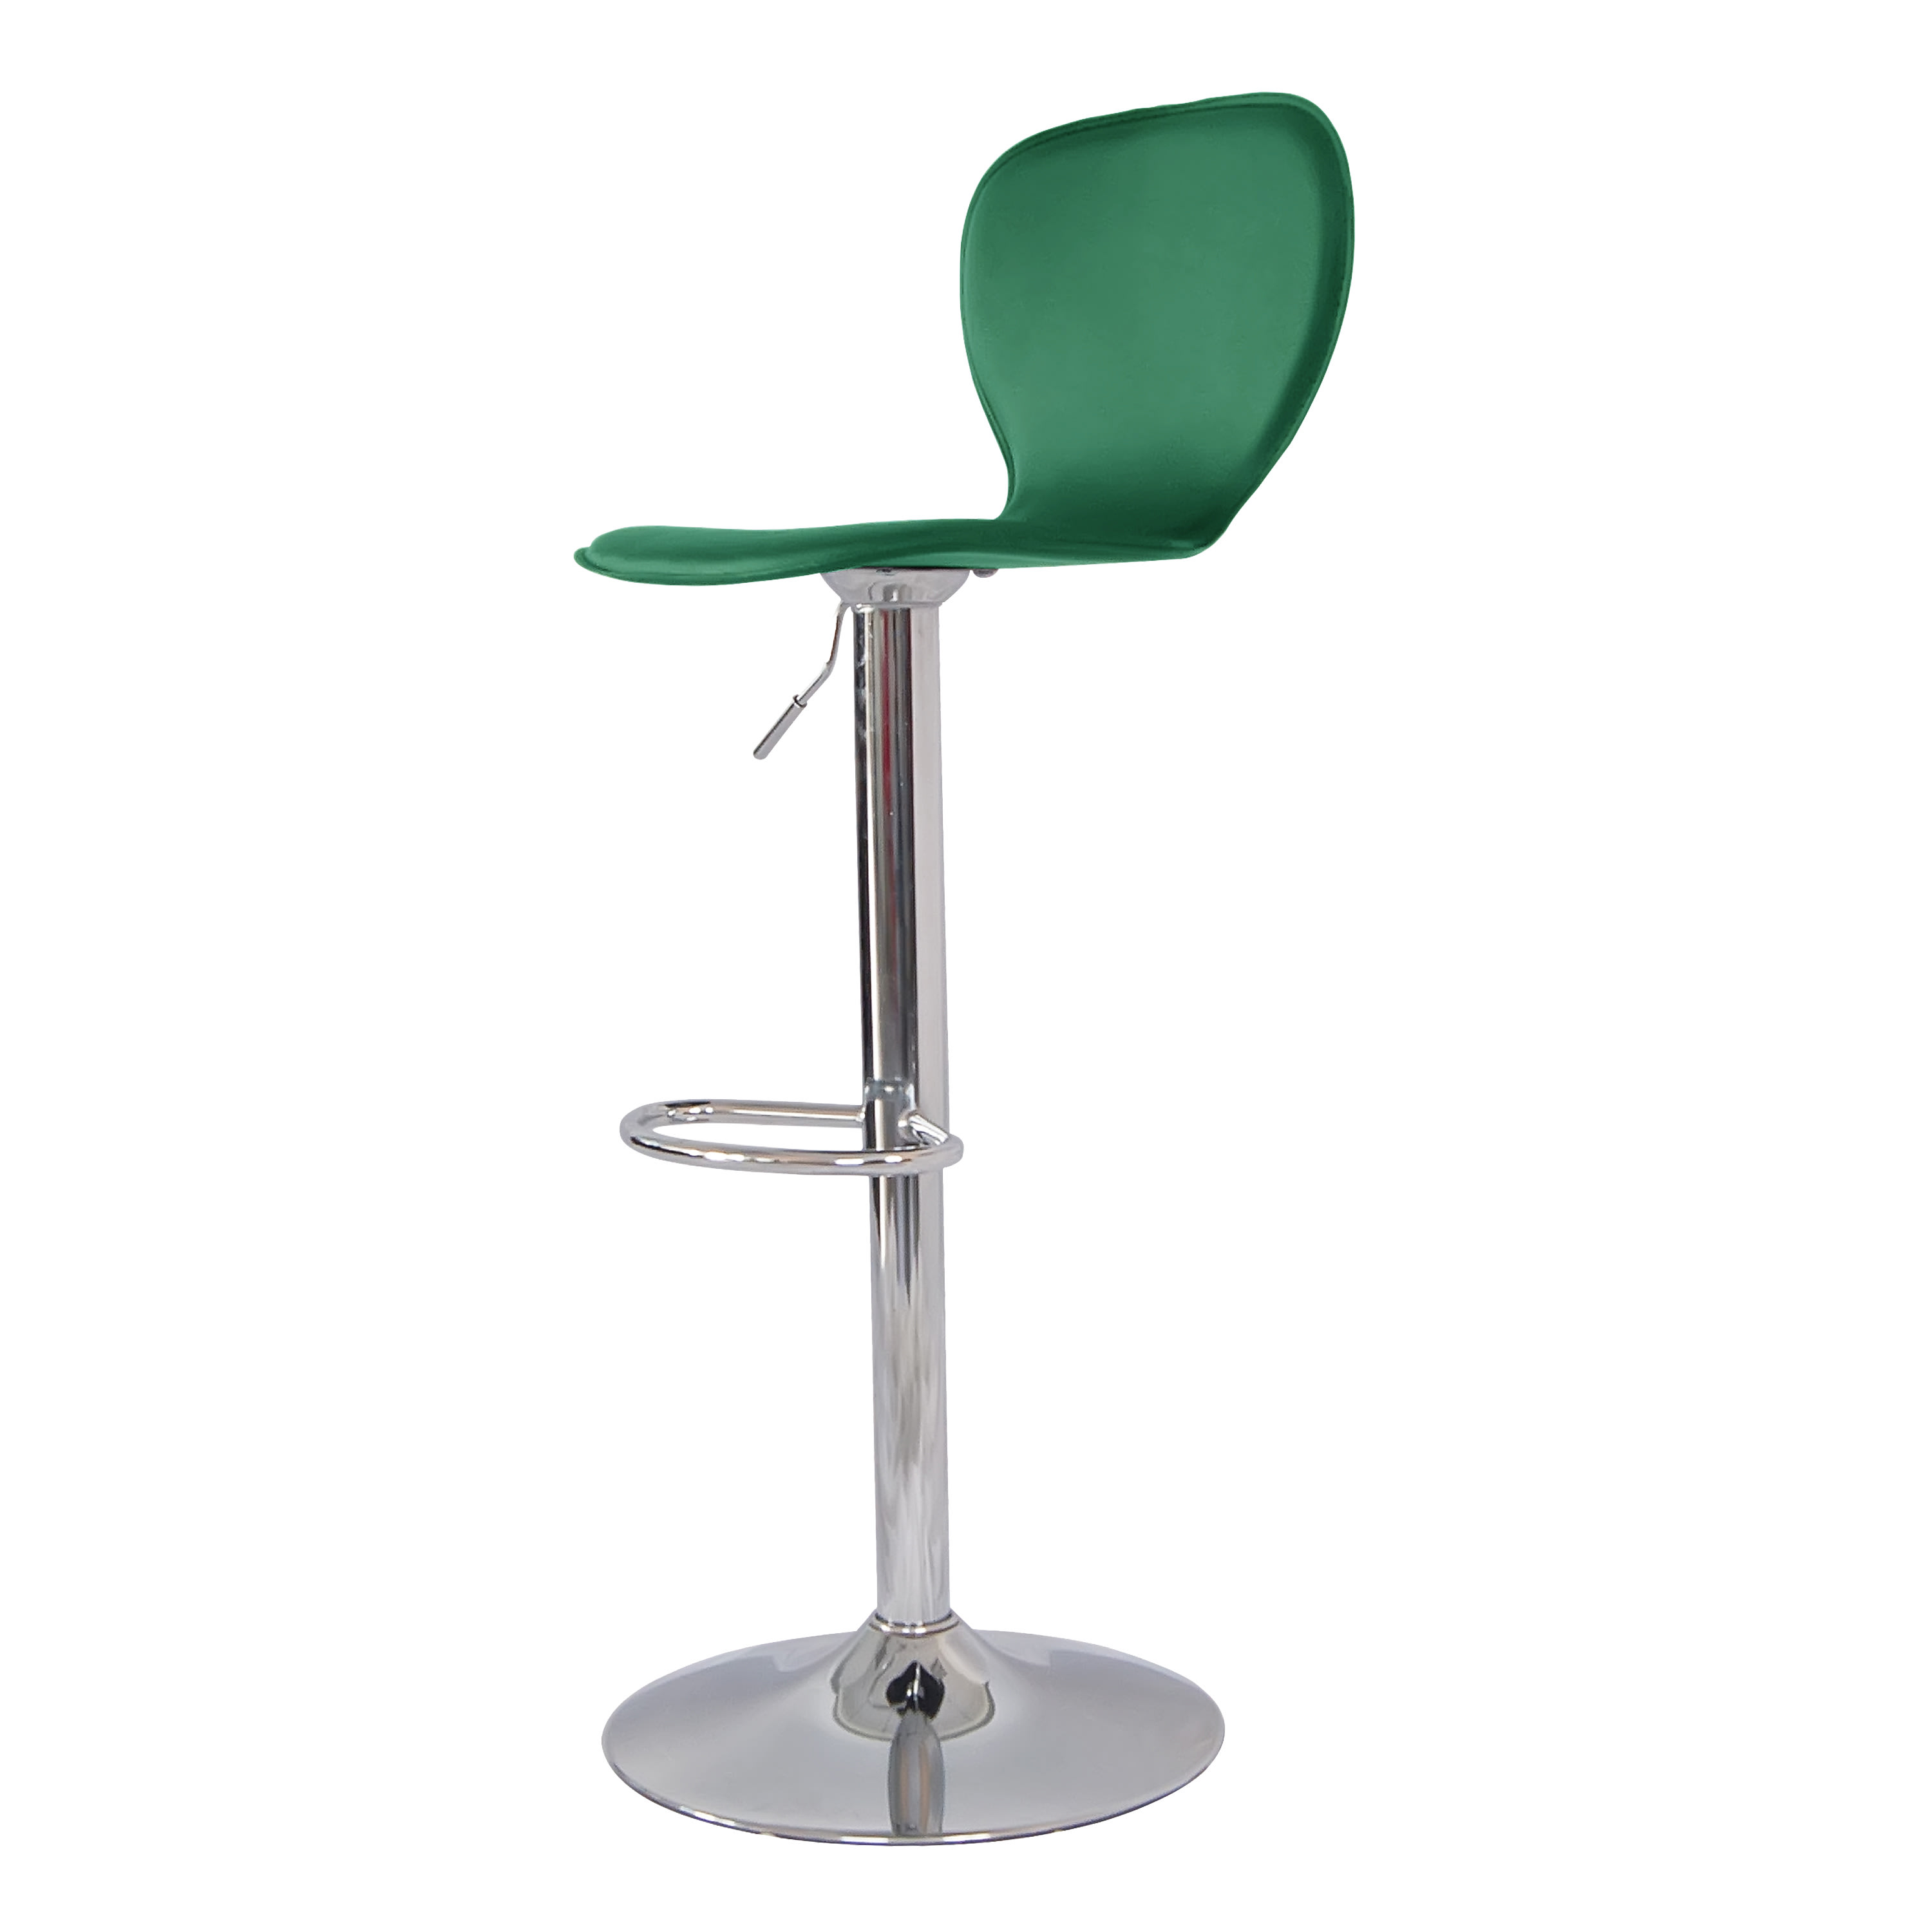 Remarkable Delacora Bs Bibs003 Caraccident5 Cool Chair Designs And Ideas Caraccident5Info